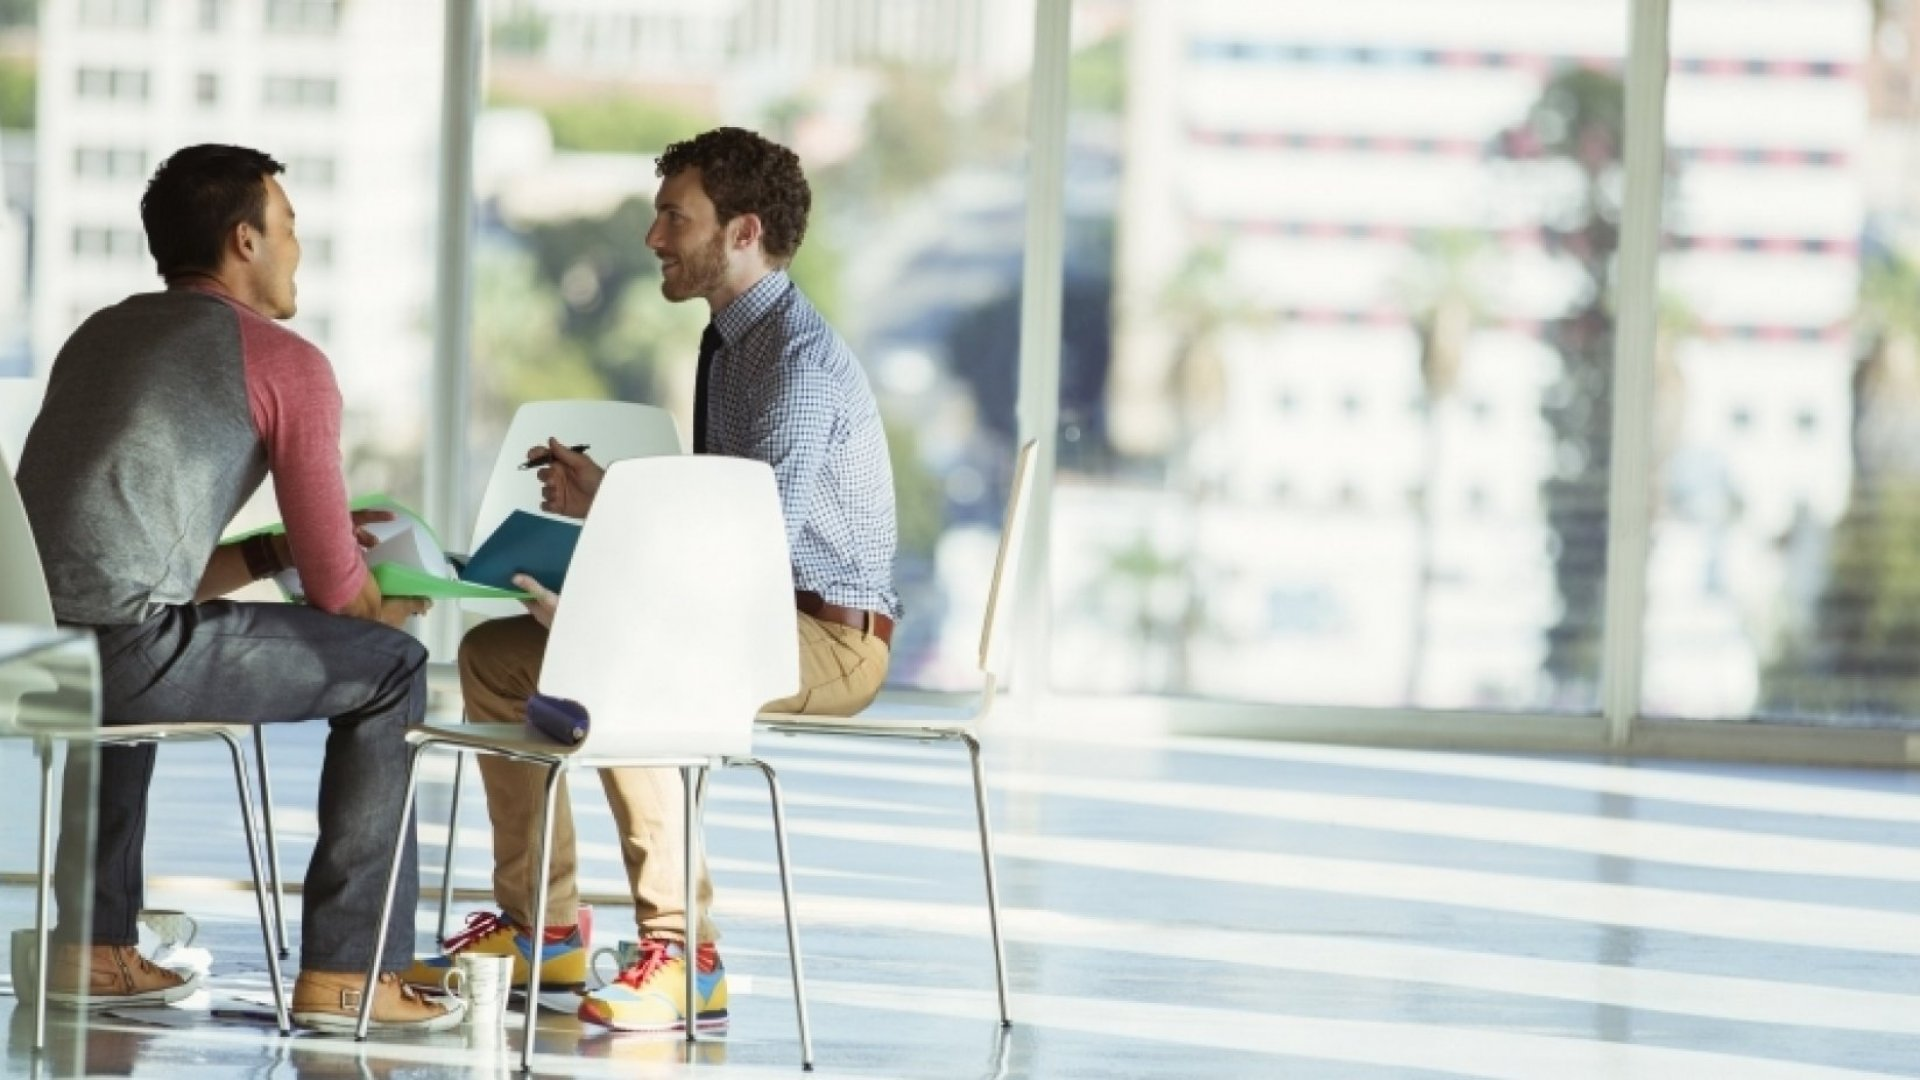 7 Questions to Ask of a Potential Co-founder